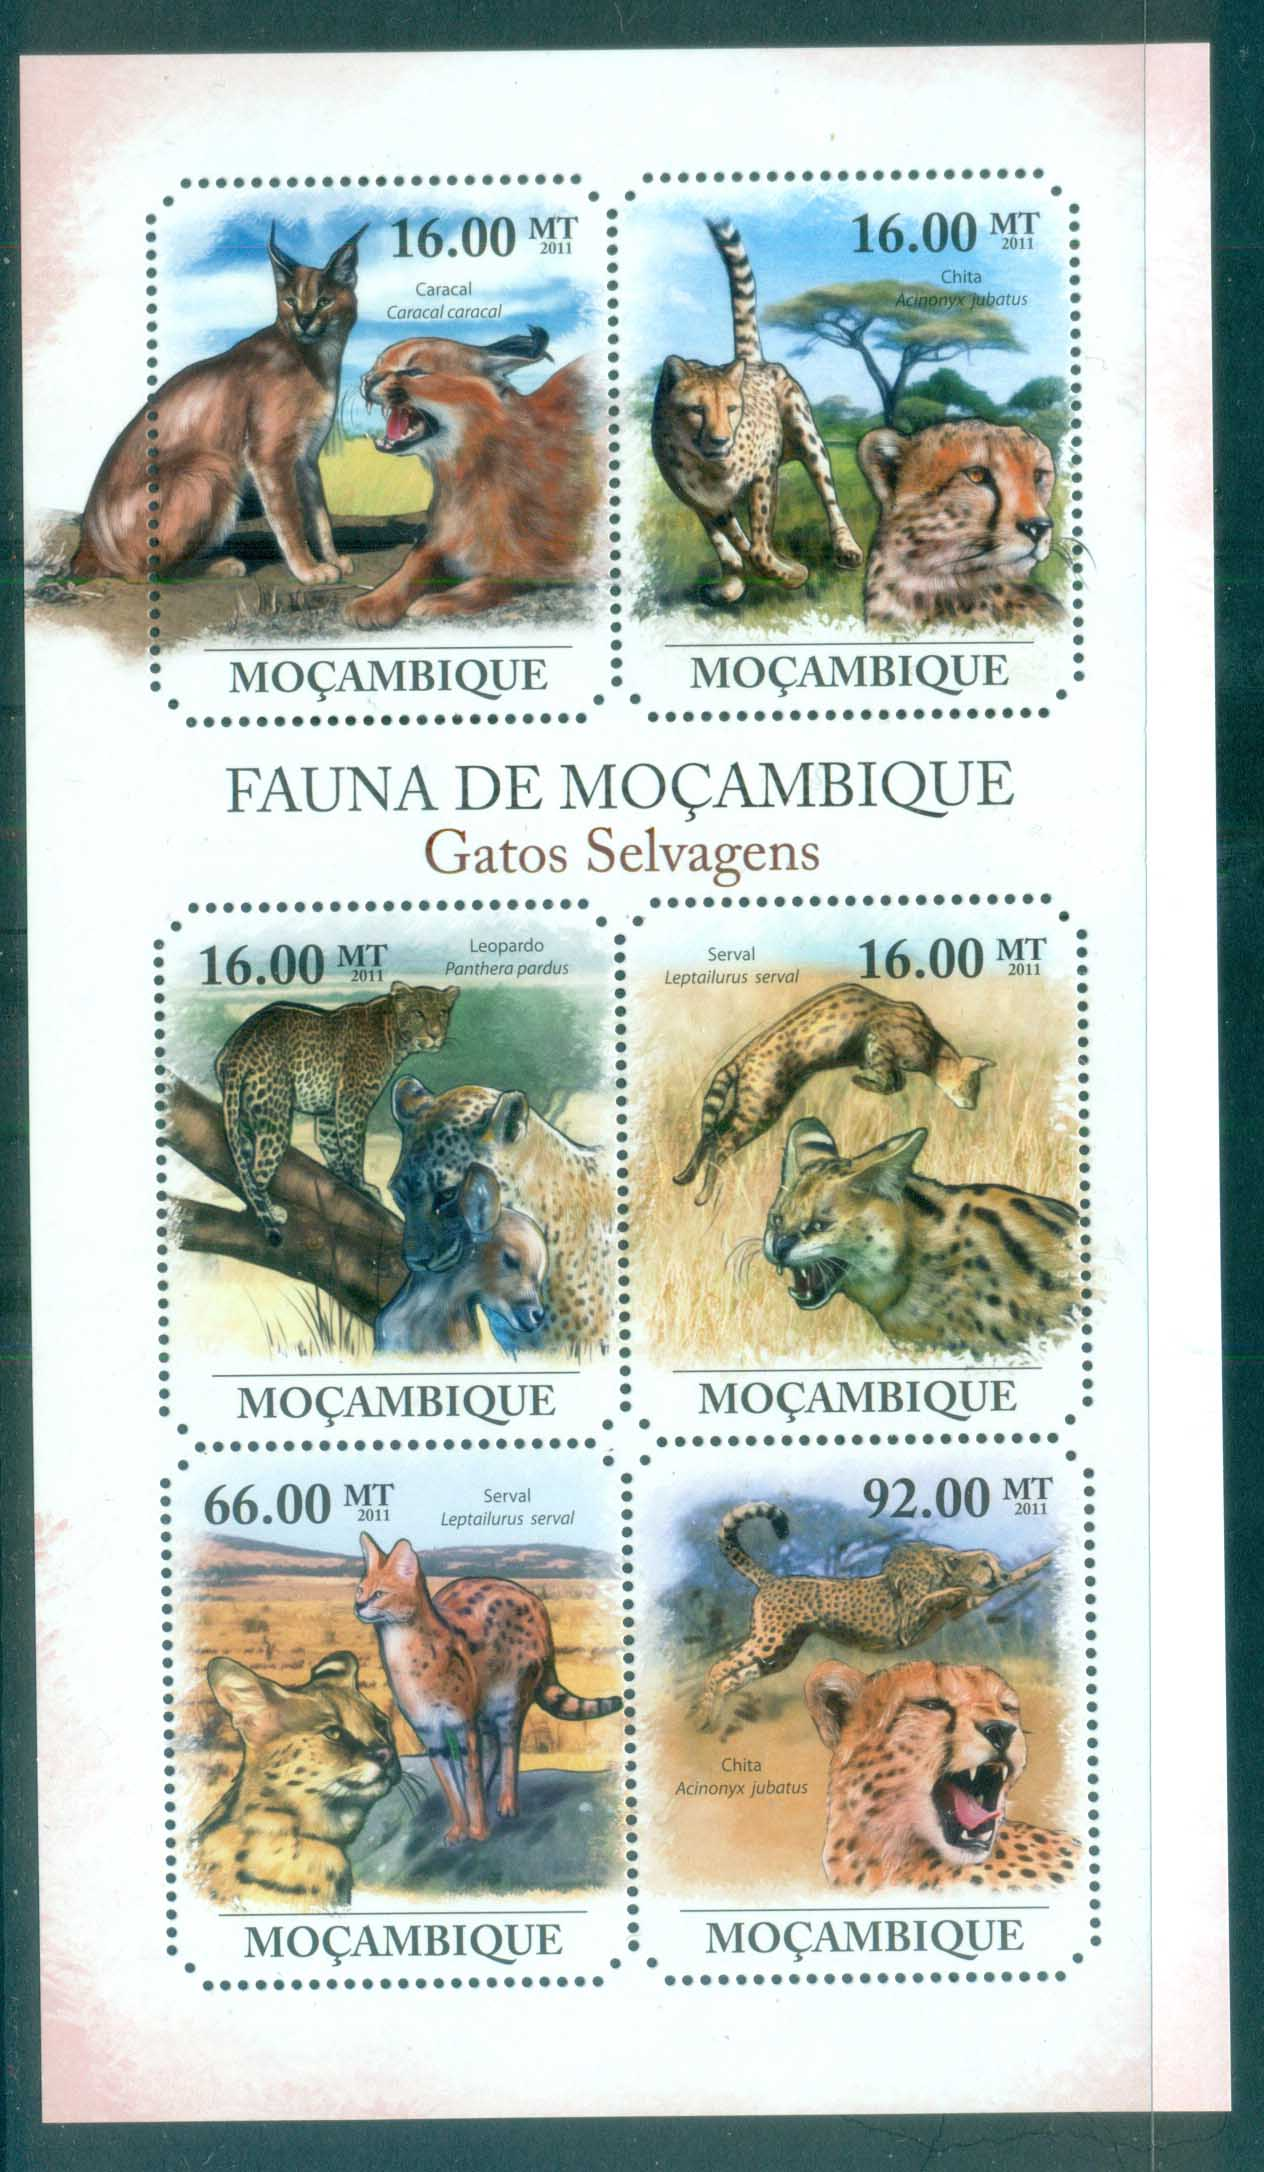 Mozambique 2011 African Wildlife, Leopard, Caracul, Cerval MS MUH MOZ11412a